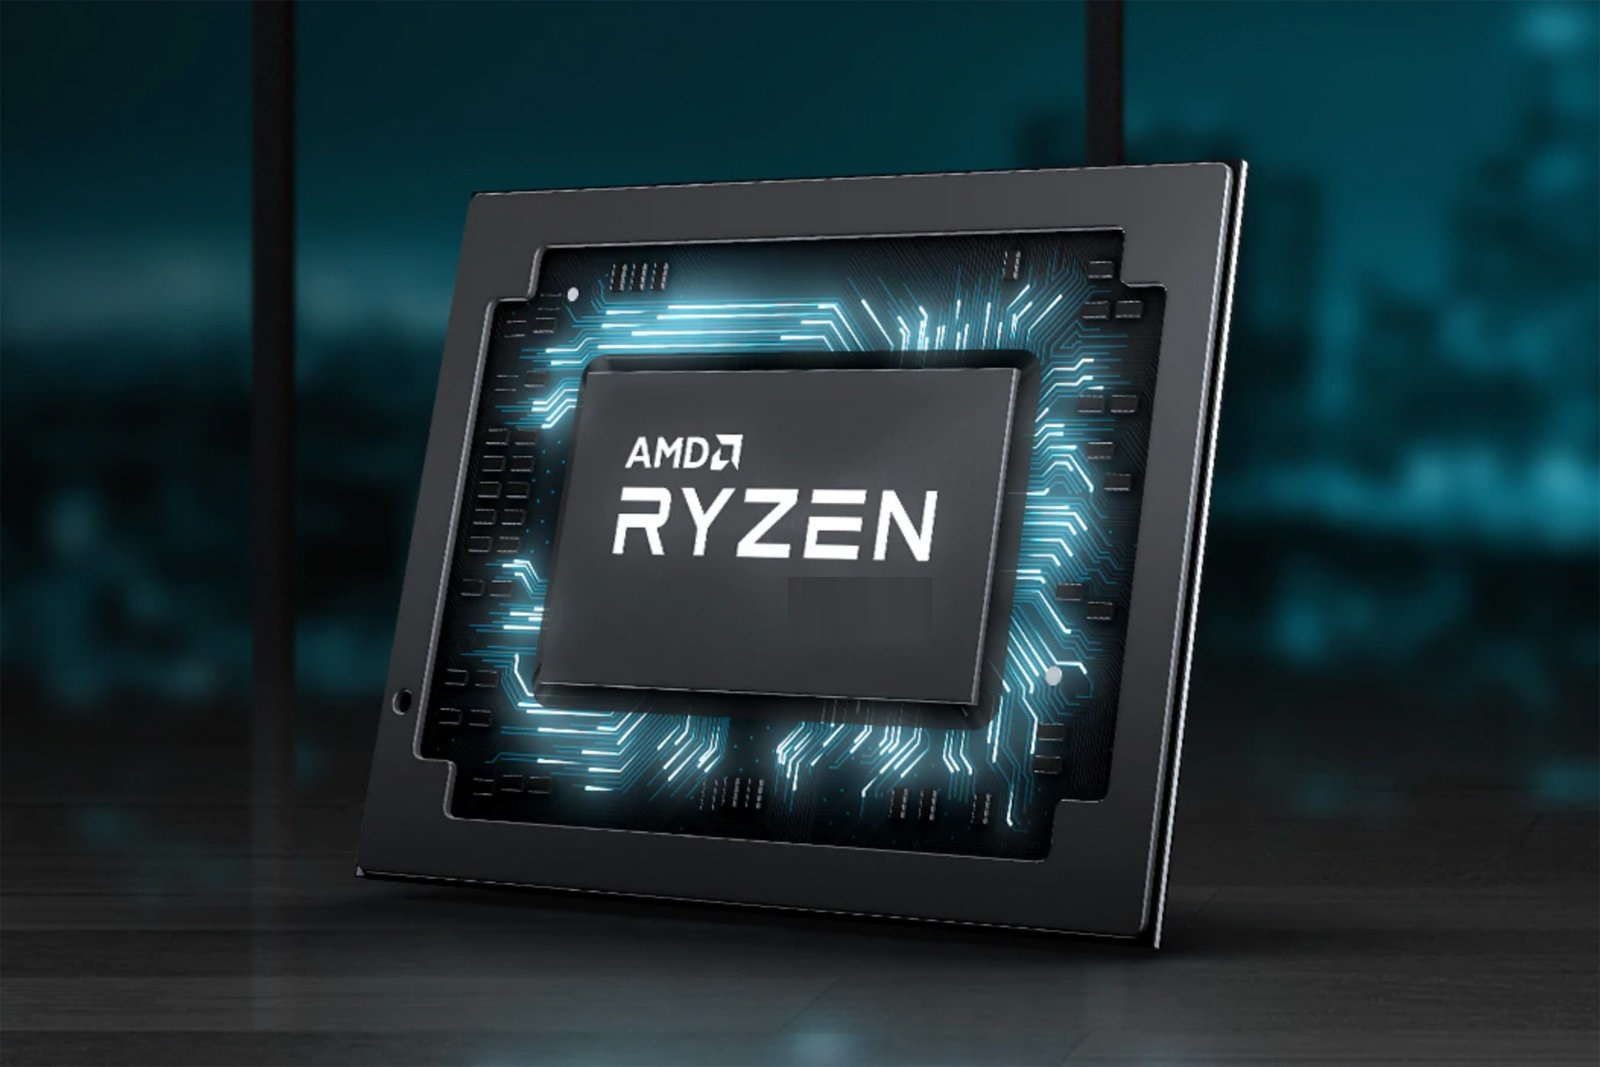 AMD Ryzen – Are AMD Ryzen PCs Worth the Money?